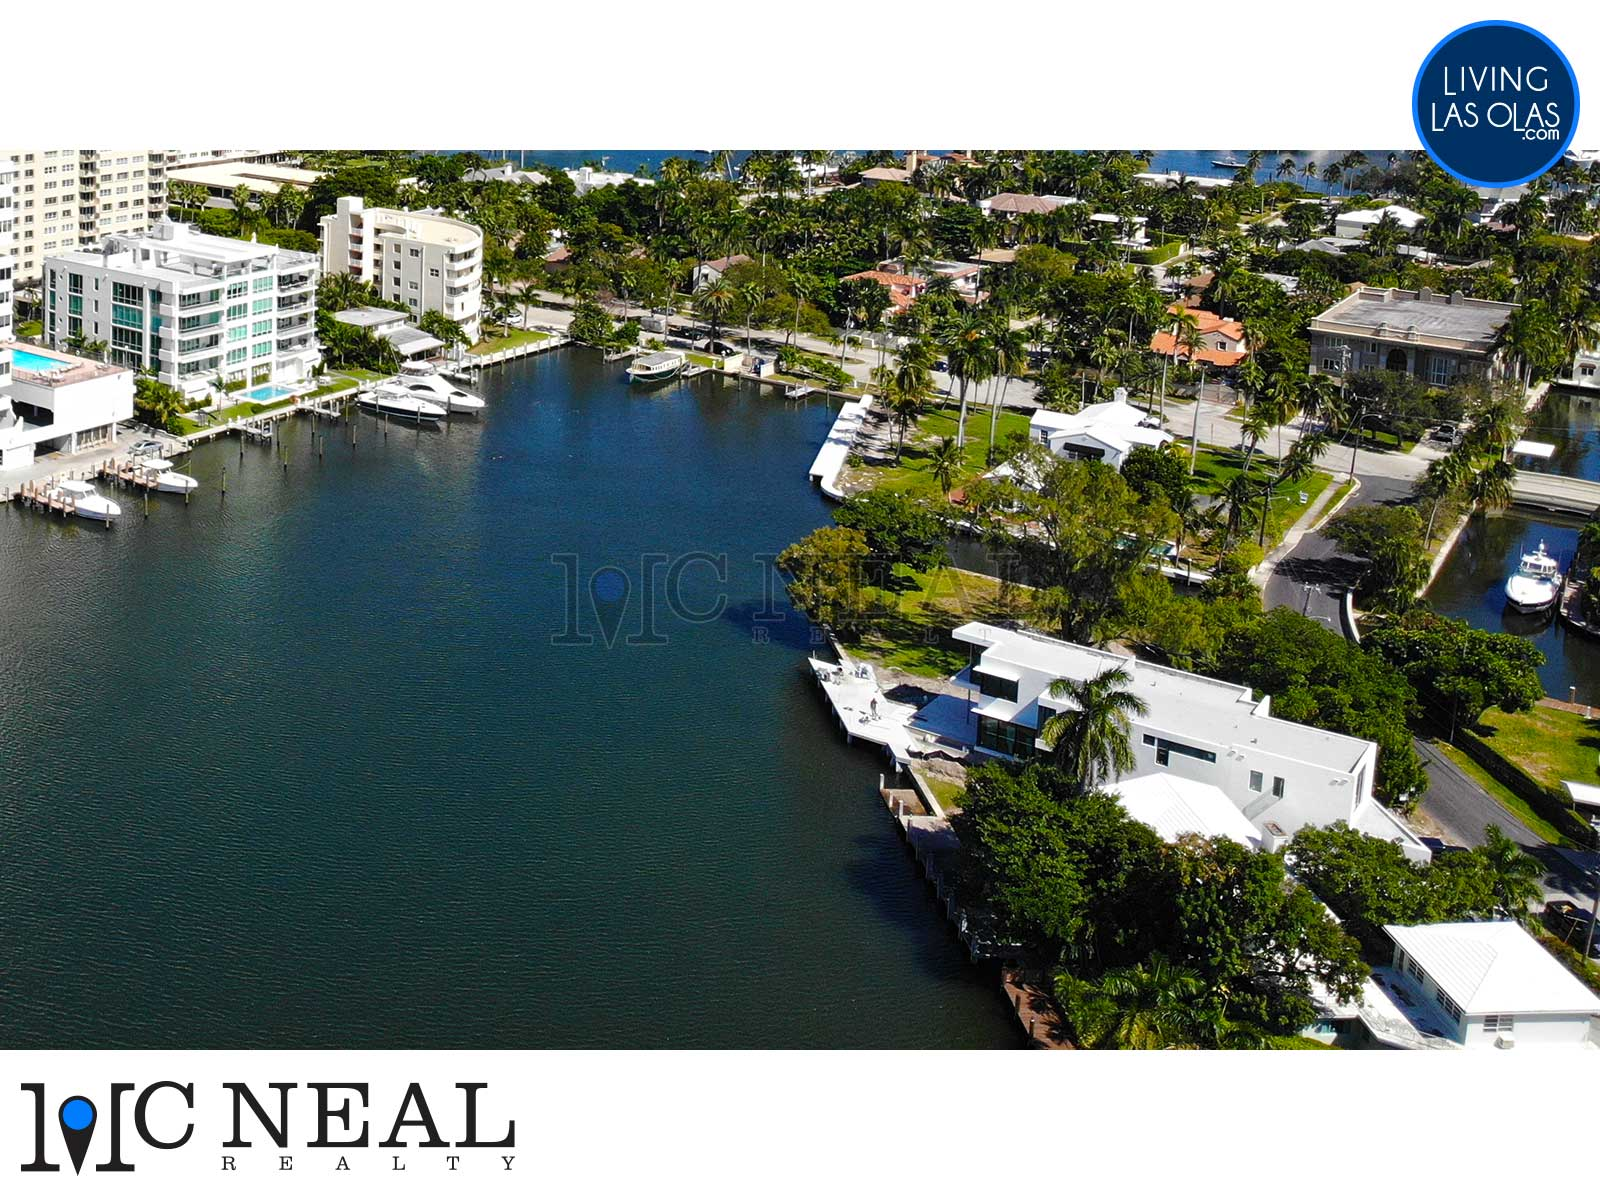 Riviera Isles Homes Real Estate 02